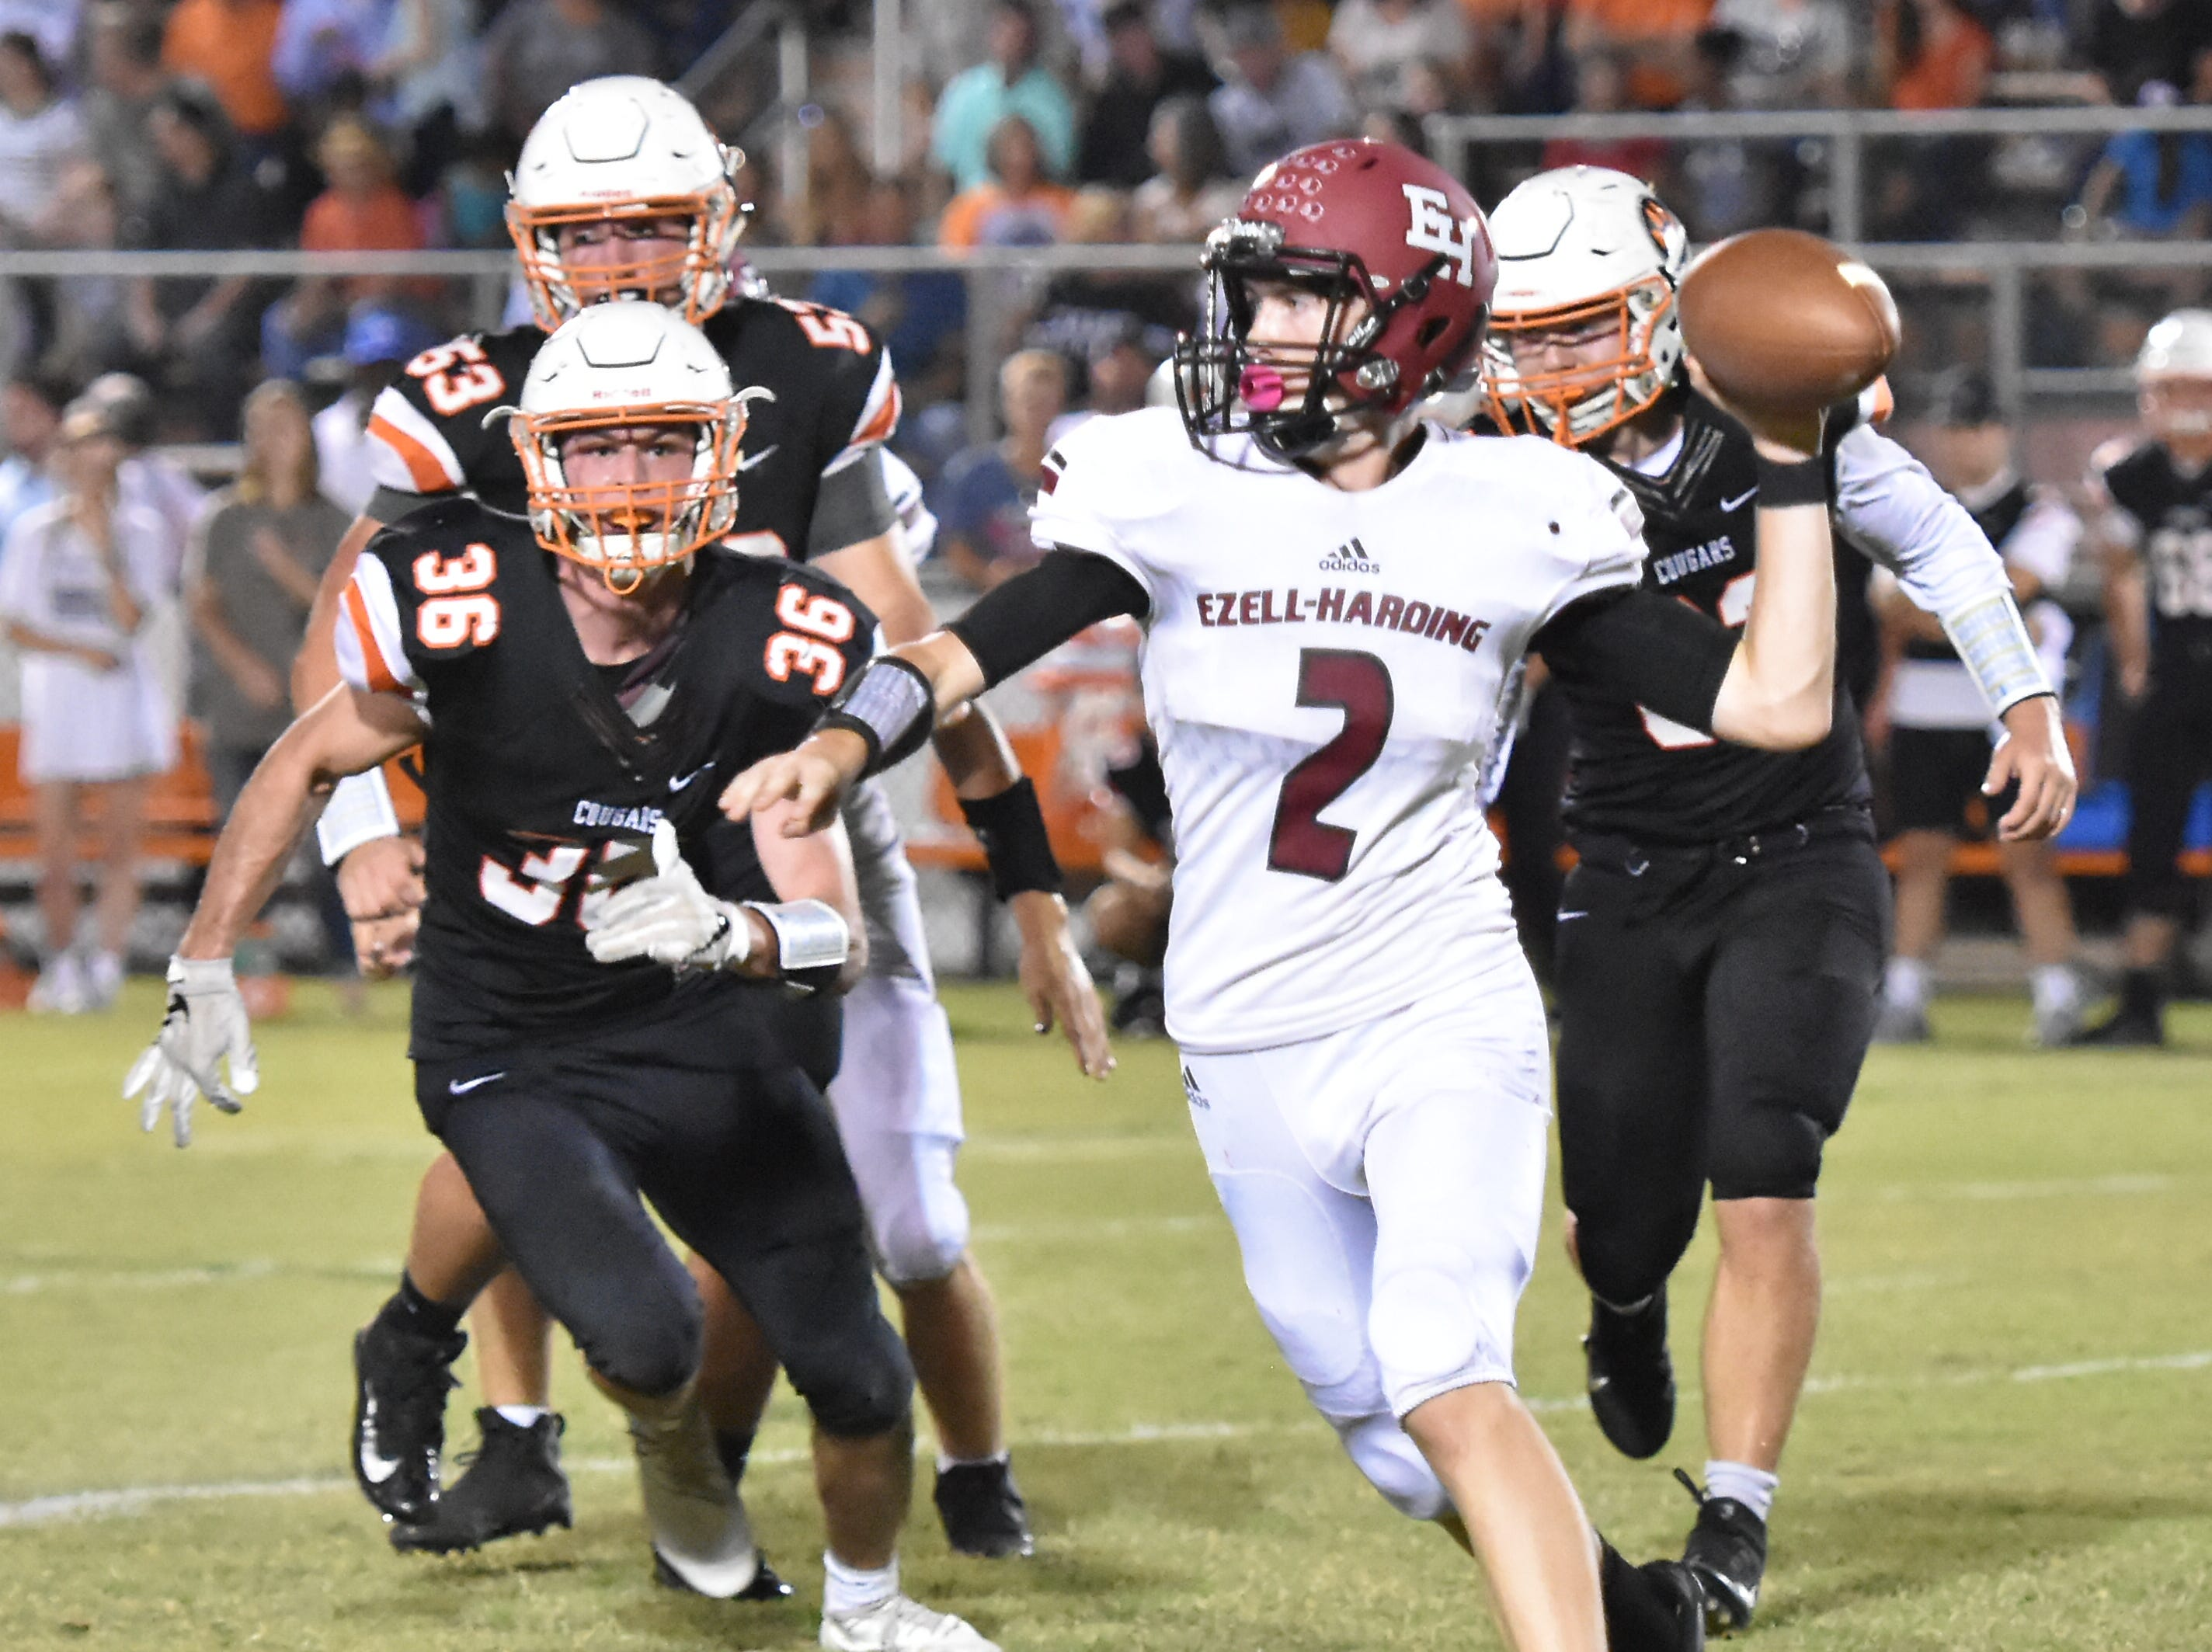 Ezell-Harding QB Derek Griffin prepares to throw a pass against MTCS Friday night.